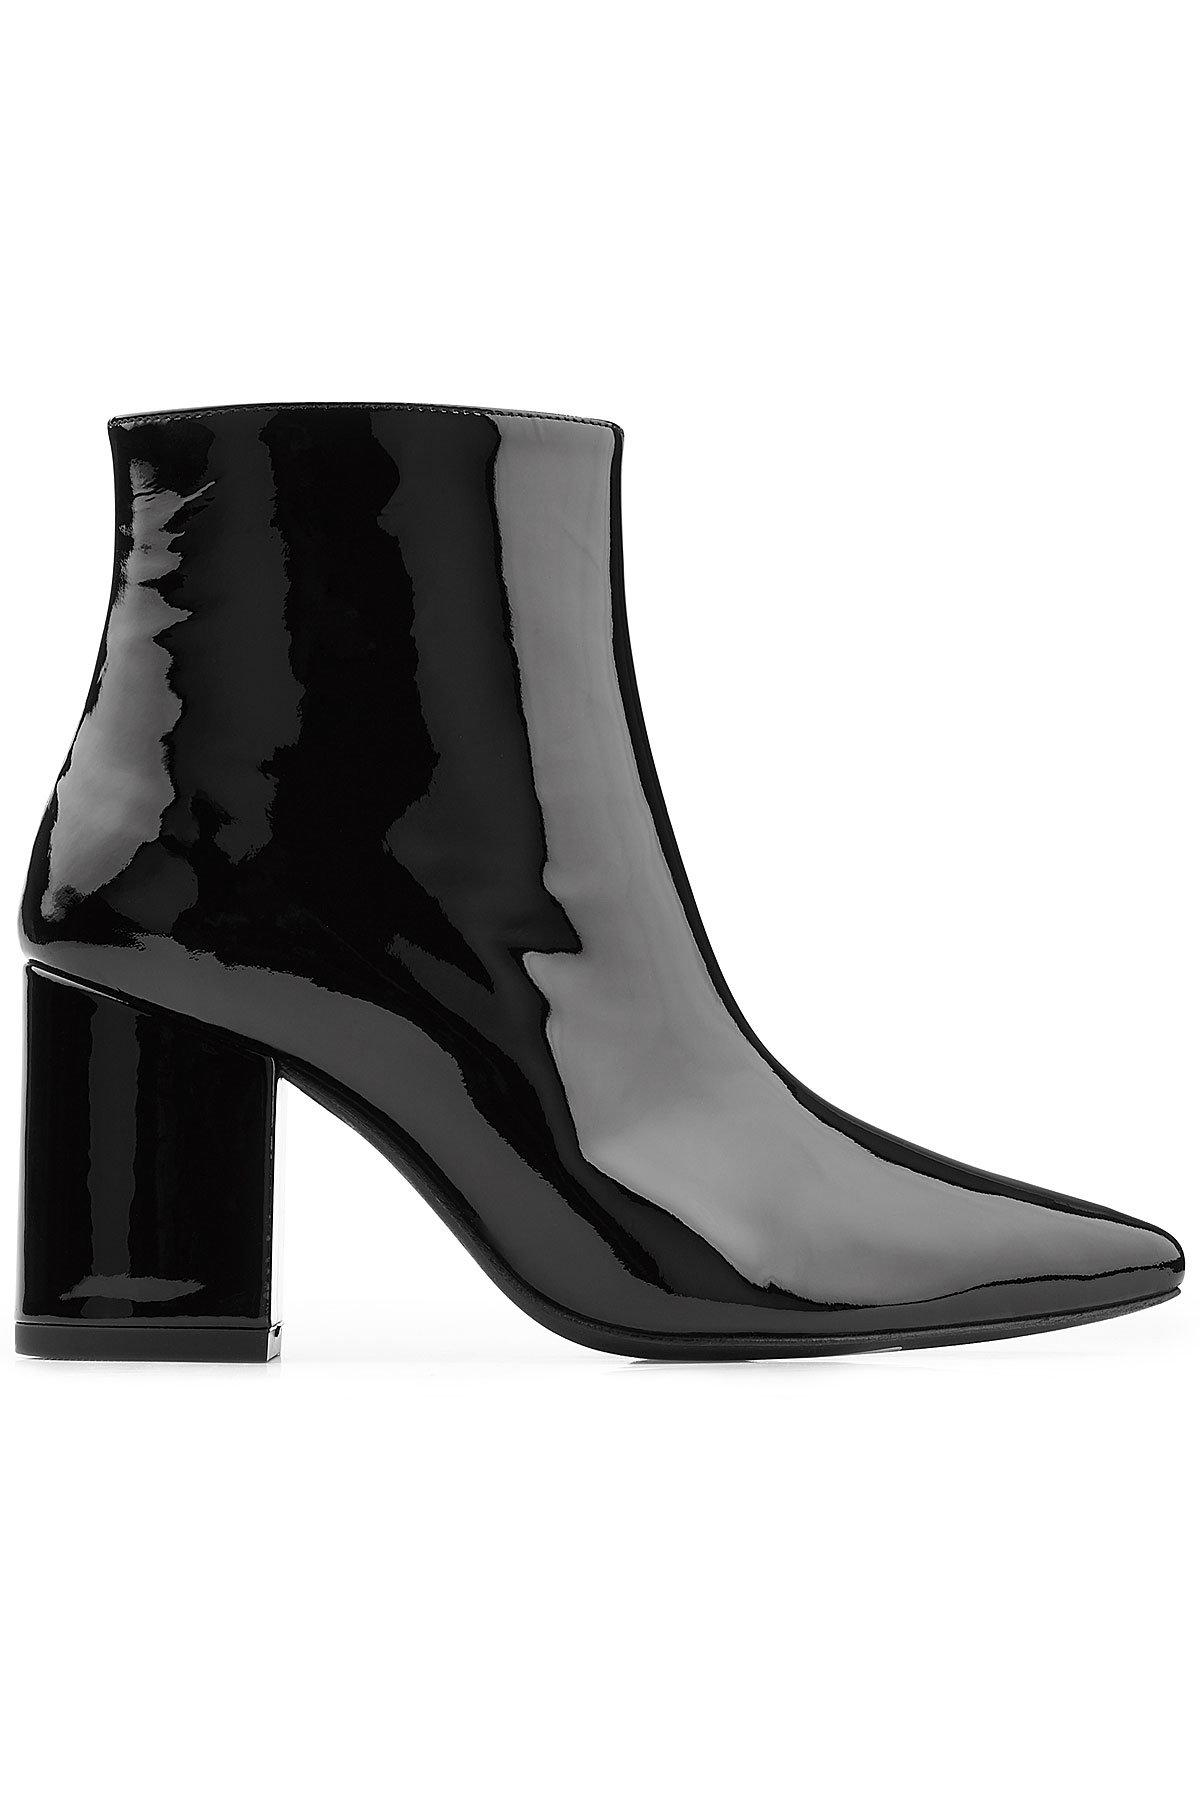 hot sale cheap price Anine Bing Pointed-Toe Patent Leather Ankle Boots sale Inexpensive new online ijCUNvrxDp